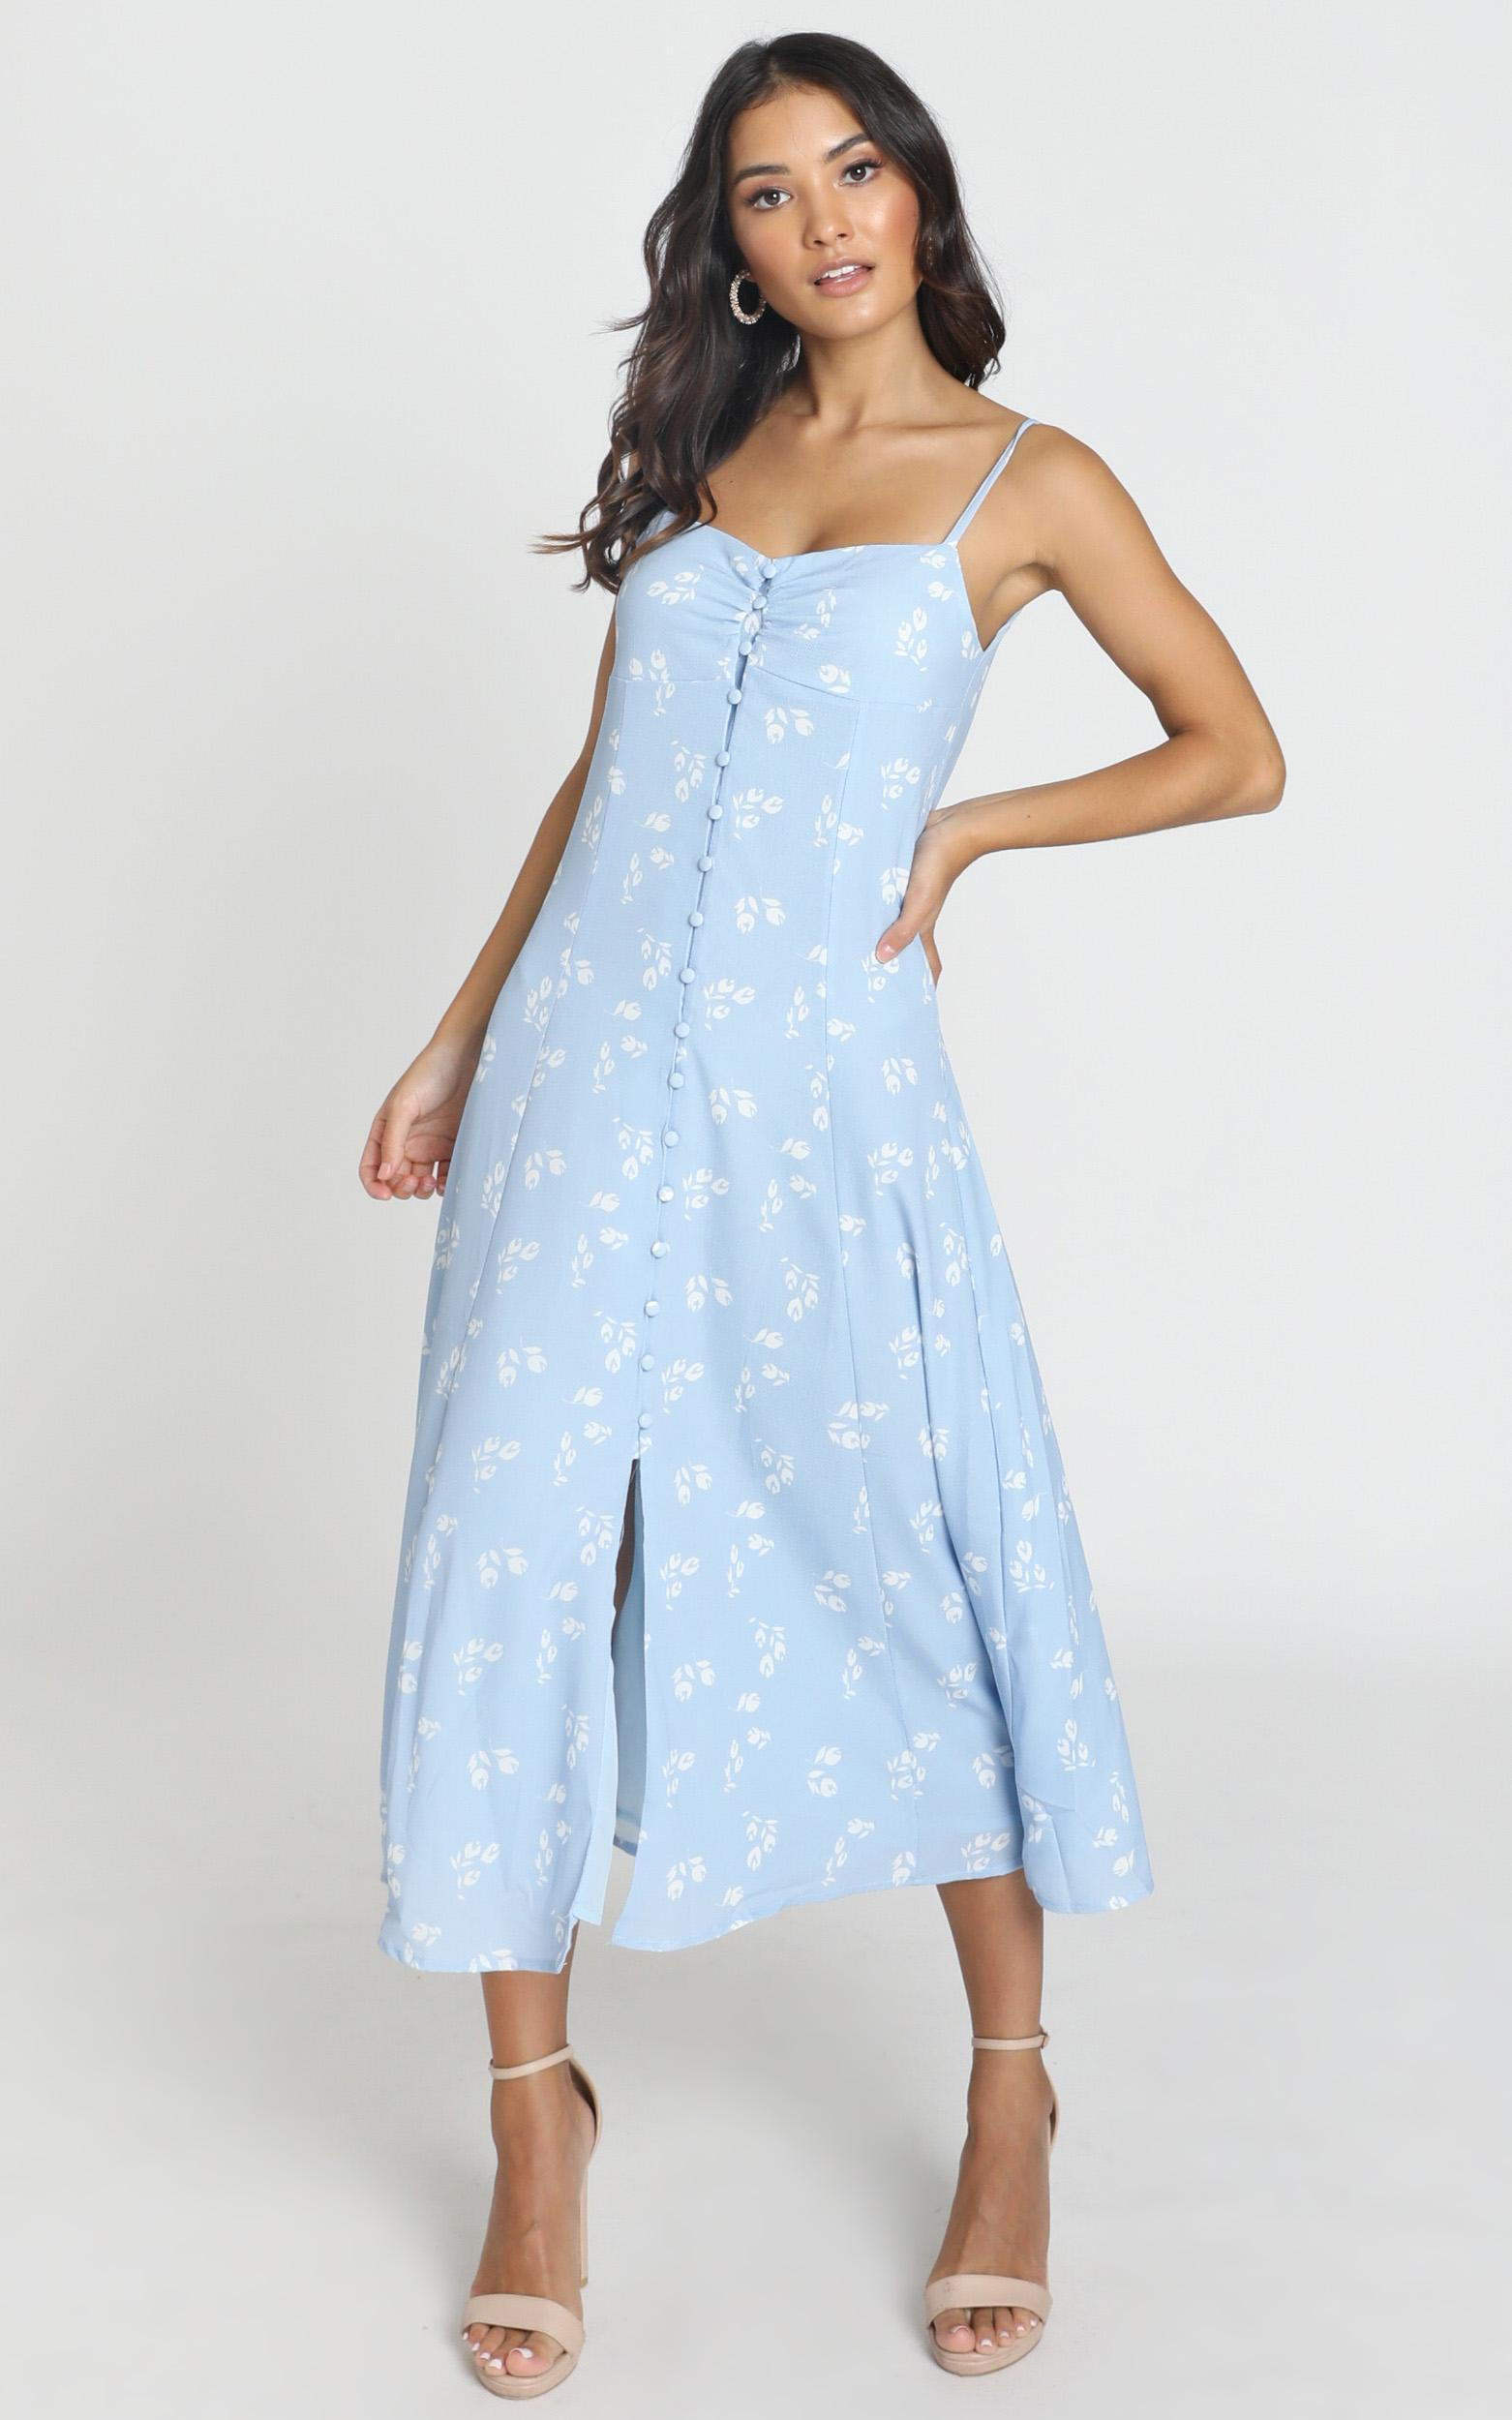 Say It Right Dress In Blue